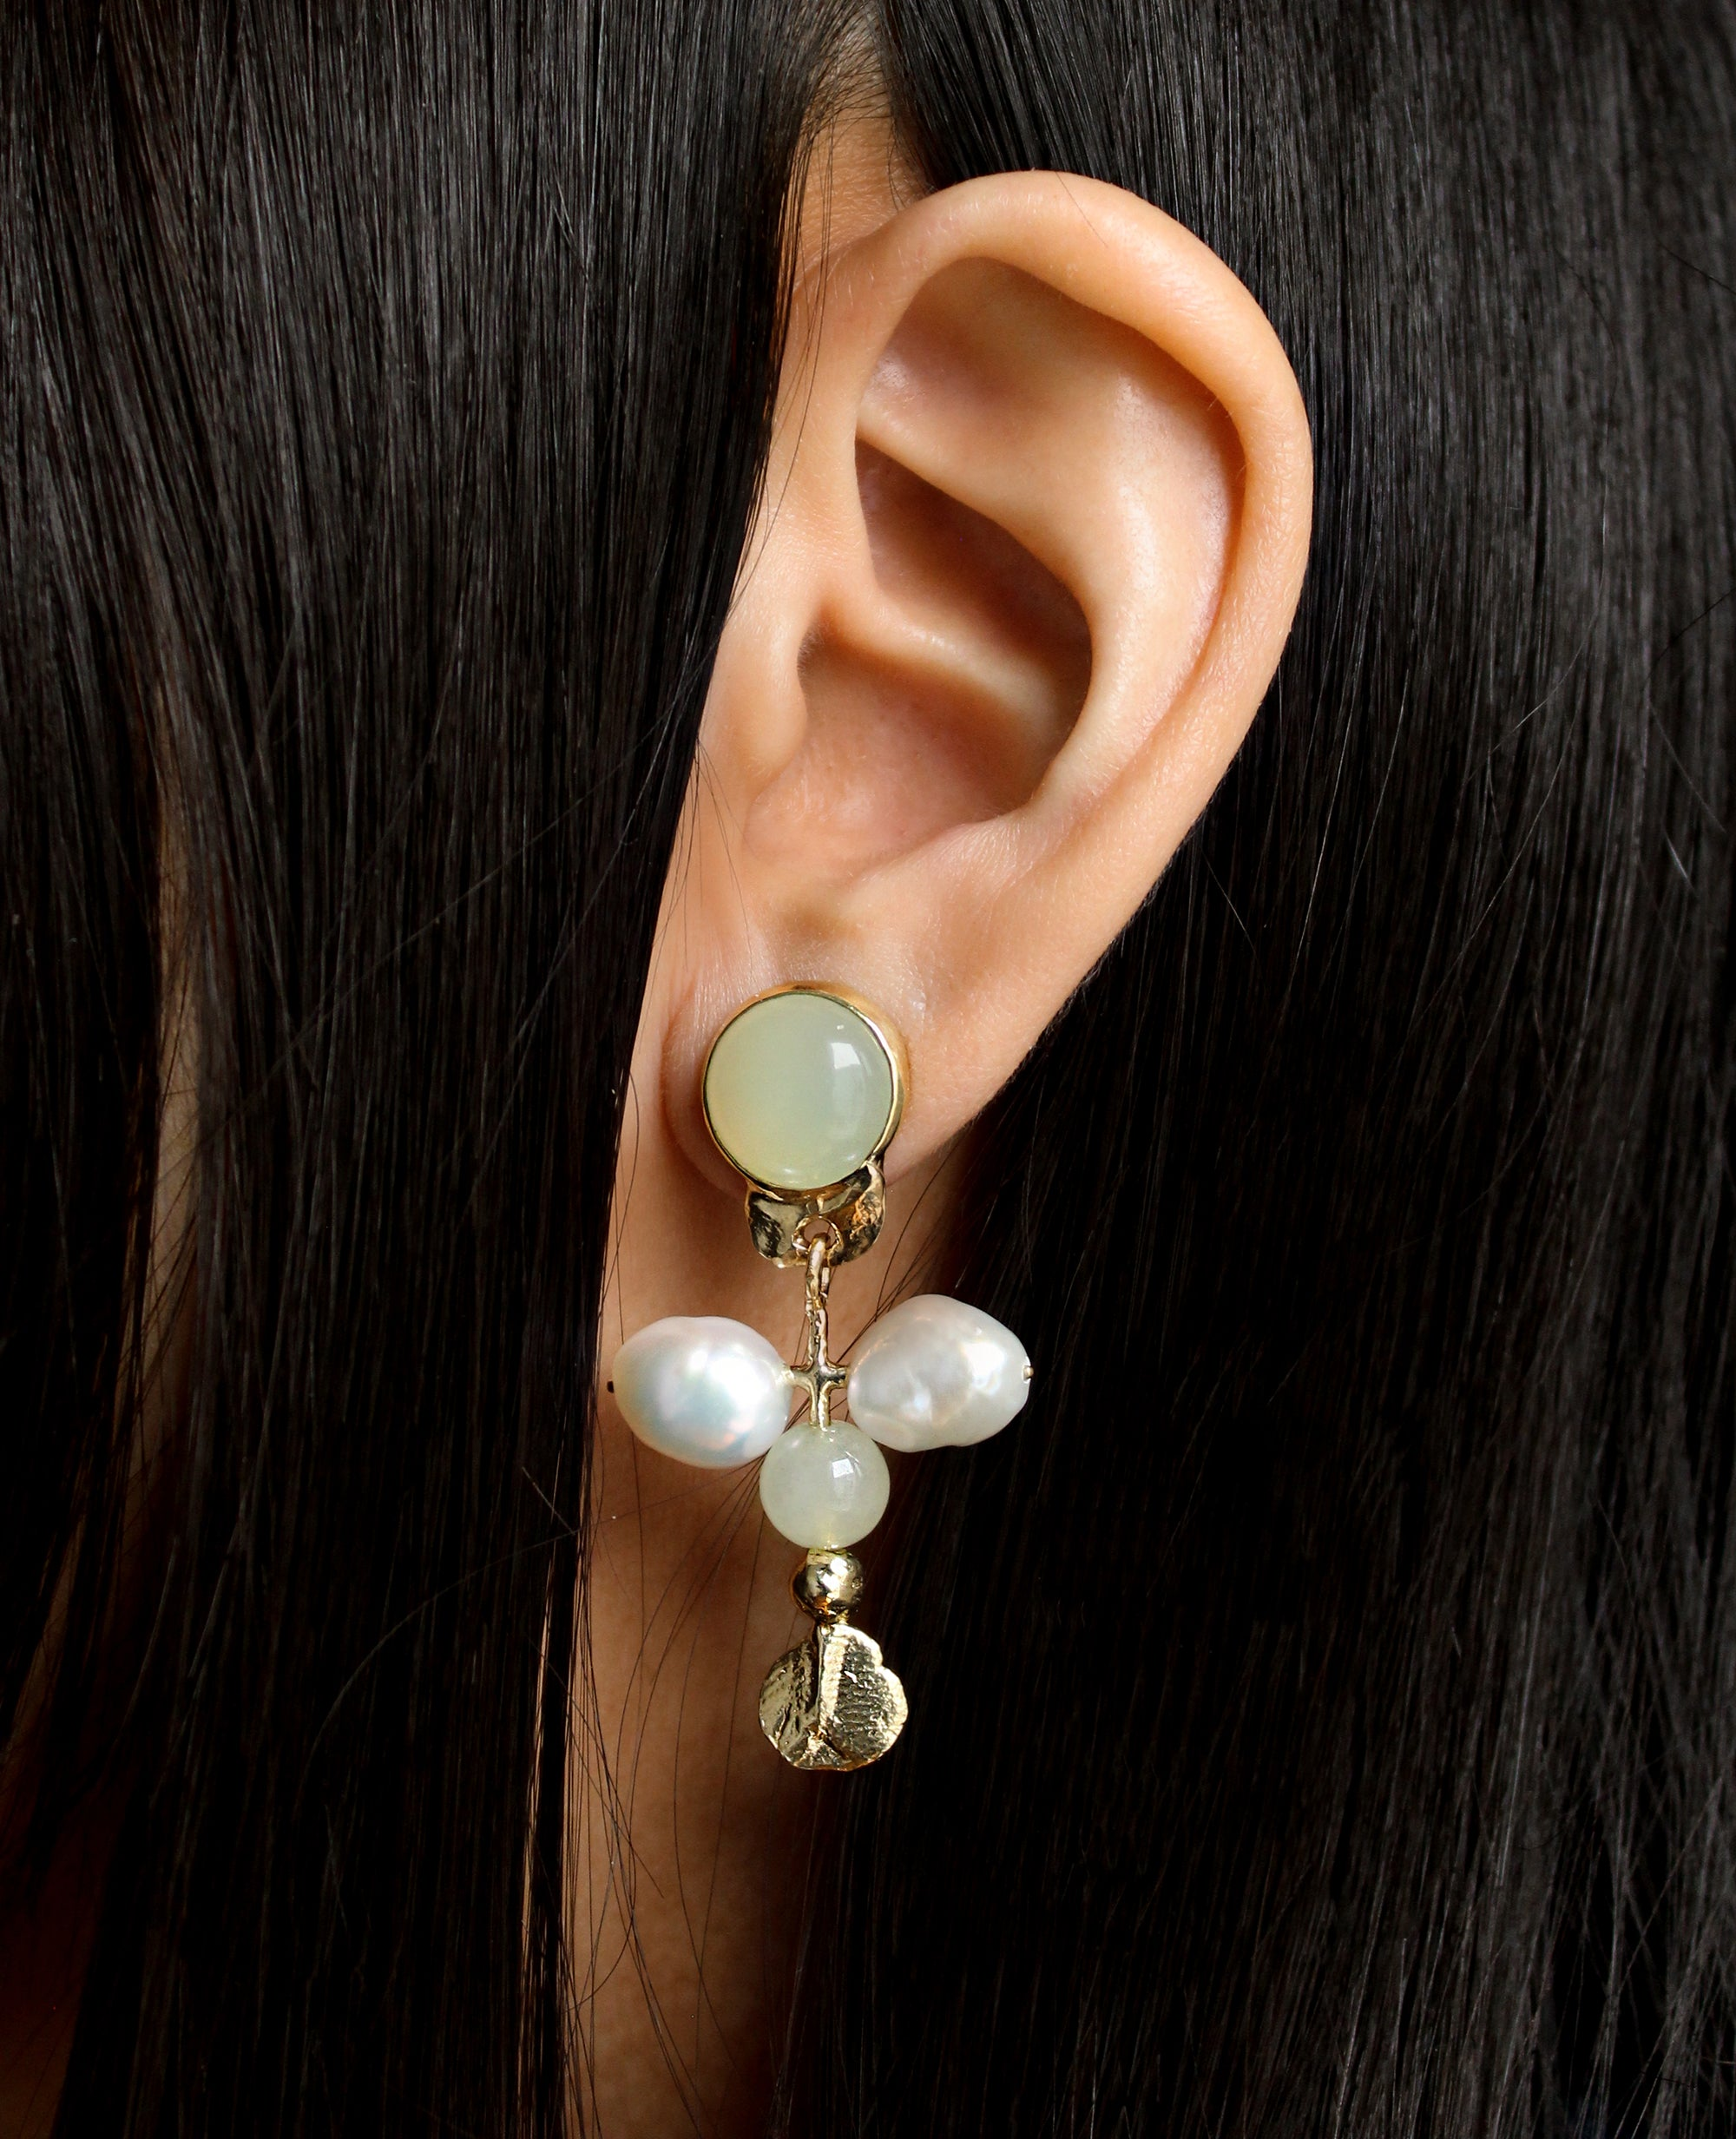 OPEN ARMS // light green jade and baroque pearls - ORA-C jewelry - handmade jewelry by Montreal based independent designer Caroline Pham